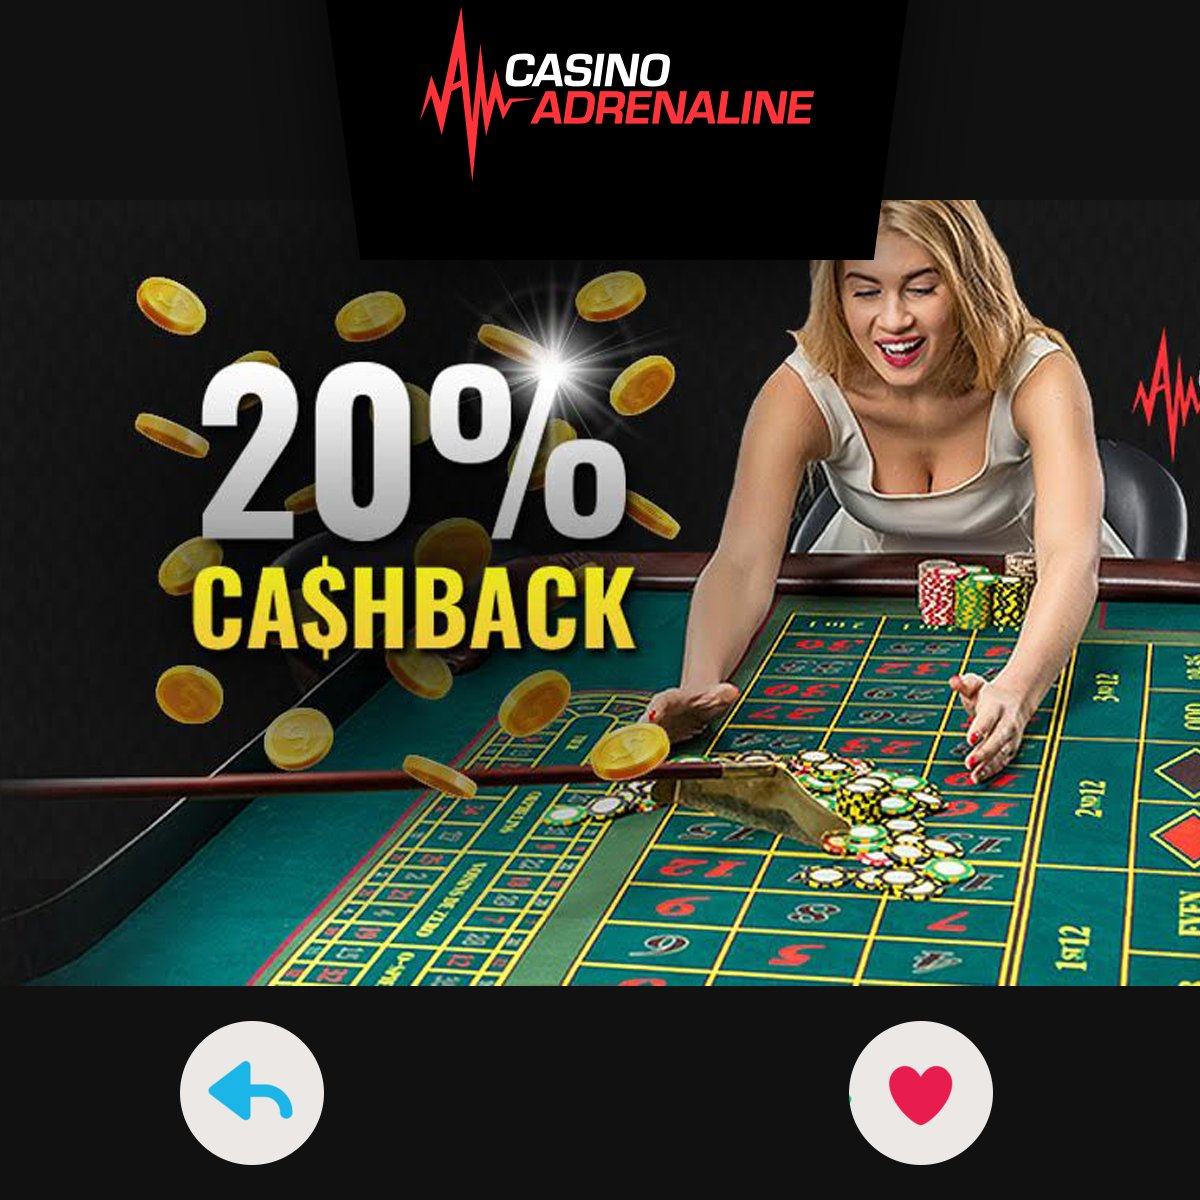 test Twitter Media - It's Friday! New weekly pay day at Casino Adrenaline. Today you will receive 20% Cashback!  Sign up: https://t.co/rADrtbCeuO https://t.co/nZPIeiqrSx